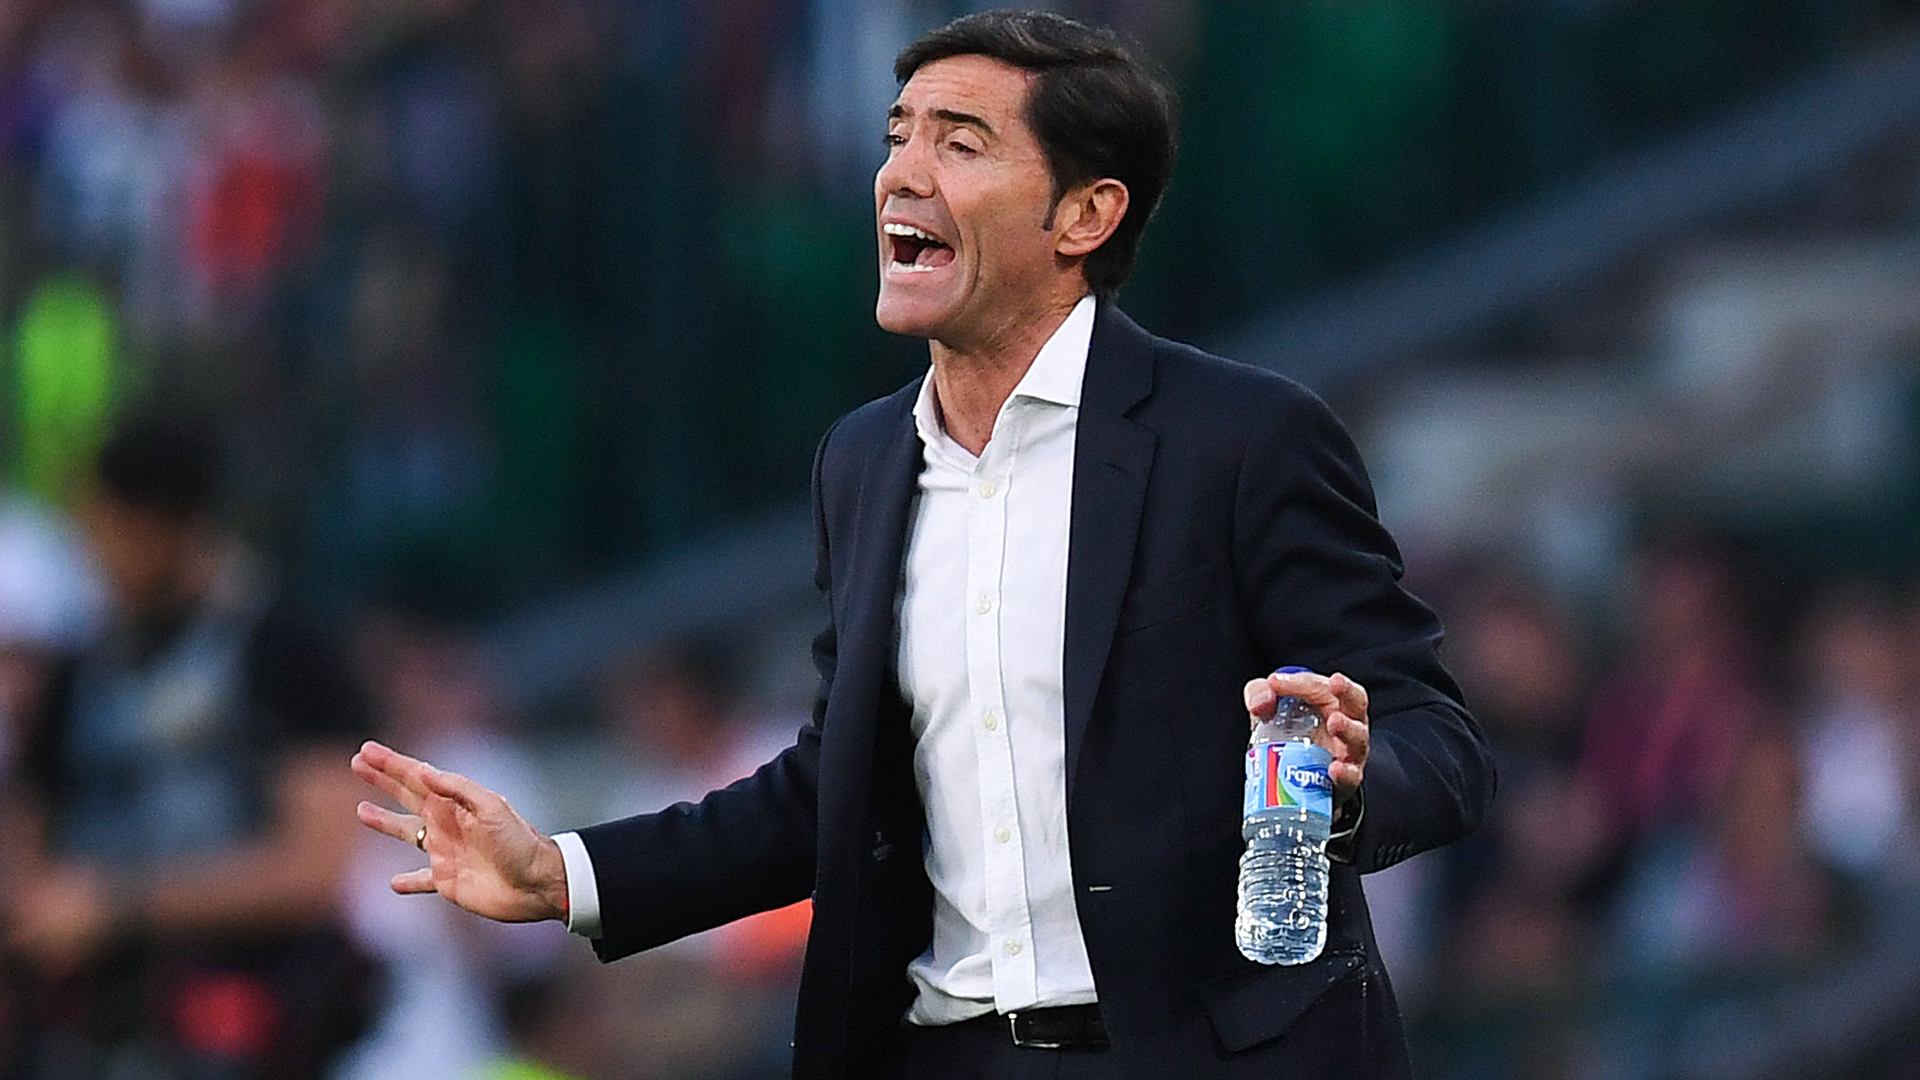 Athletic Bilbao to appoint Marcelino as coach until 2022 after Garitano sacking